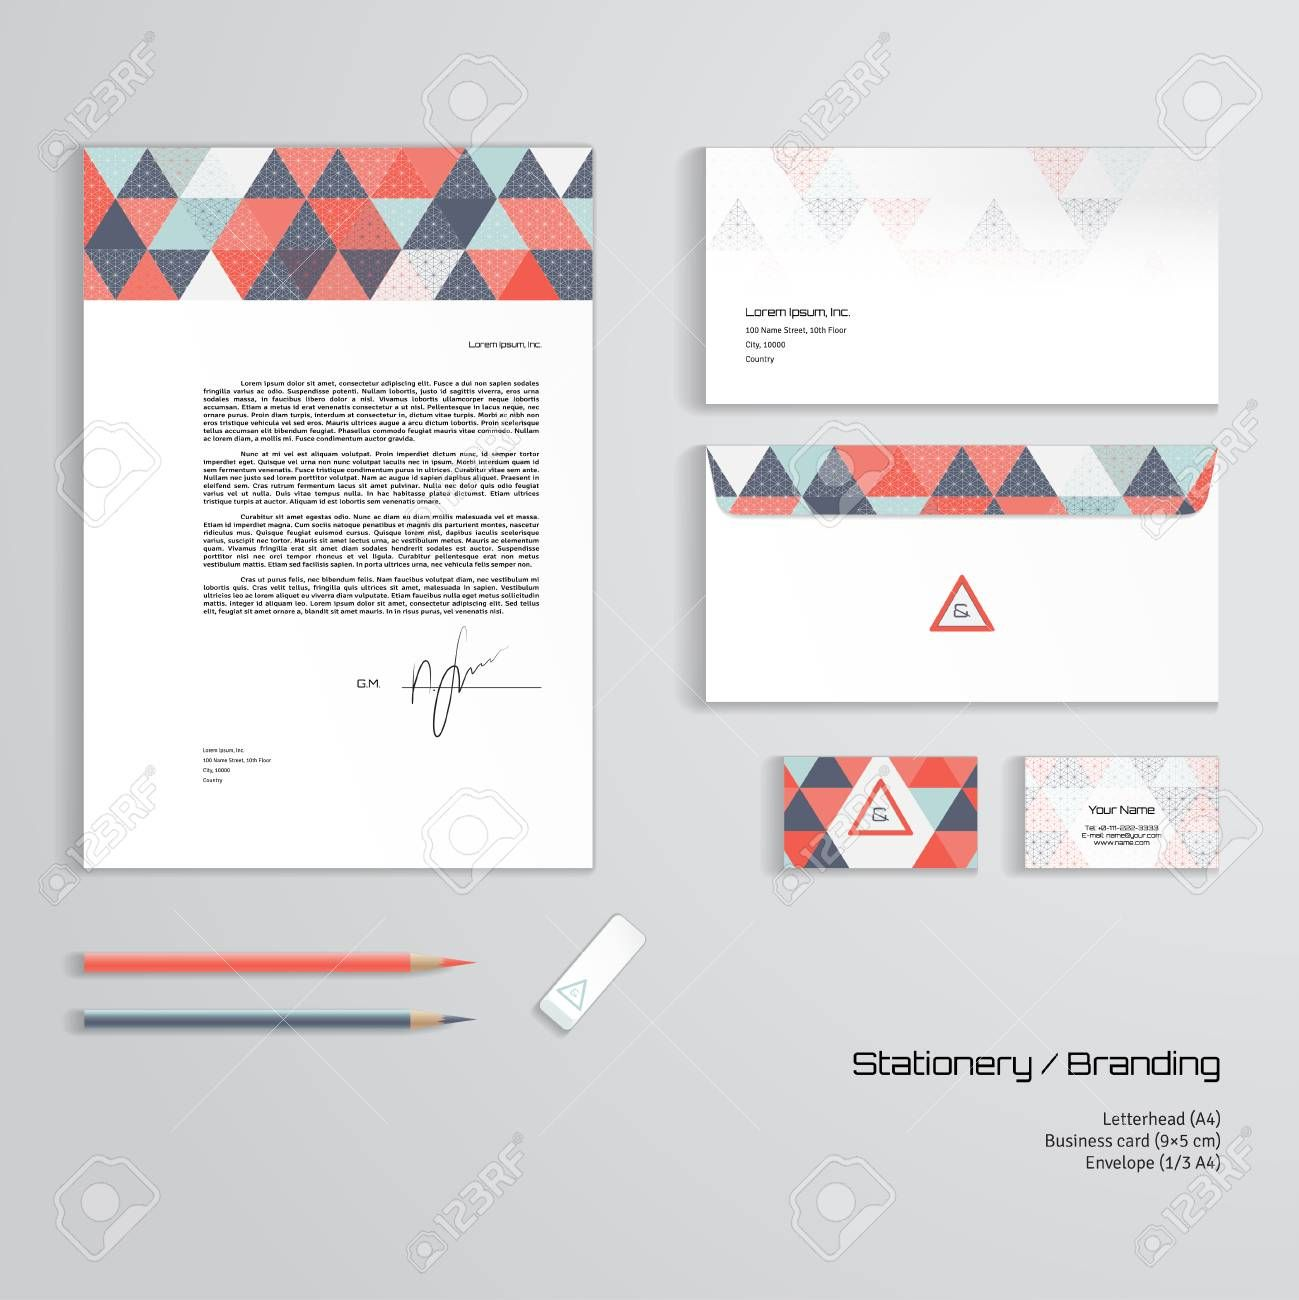 Vector Corporate Identity Templates Multicolored Geometric Pattern Inside Business Card L Free Business Card Templates Fresh Business Cards Id Card Template